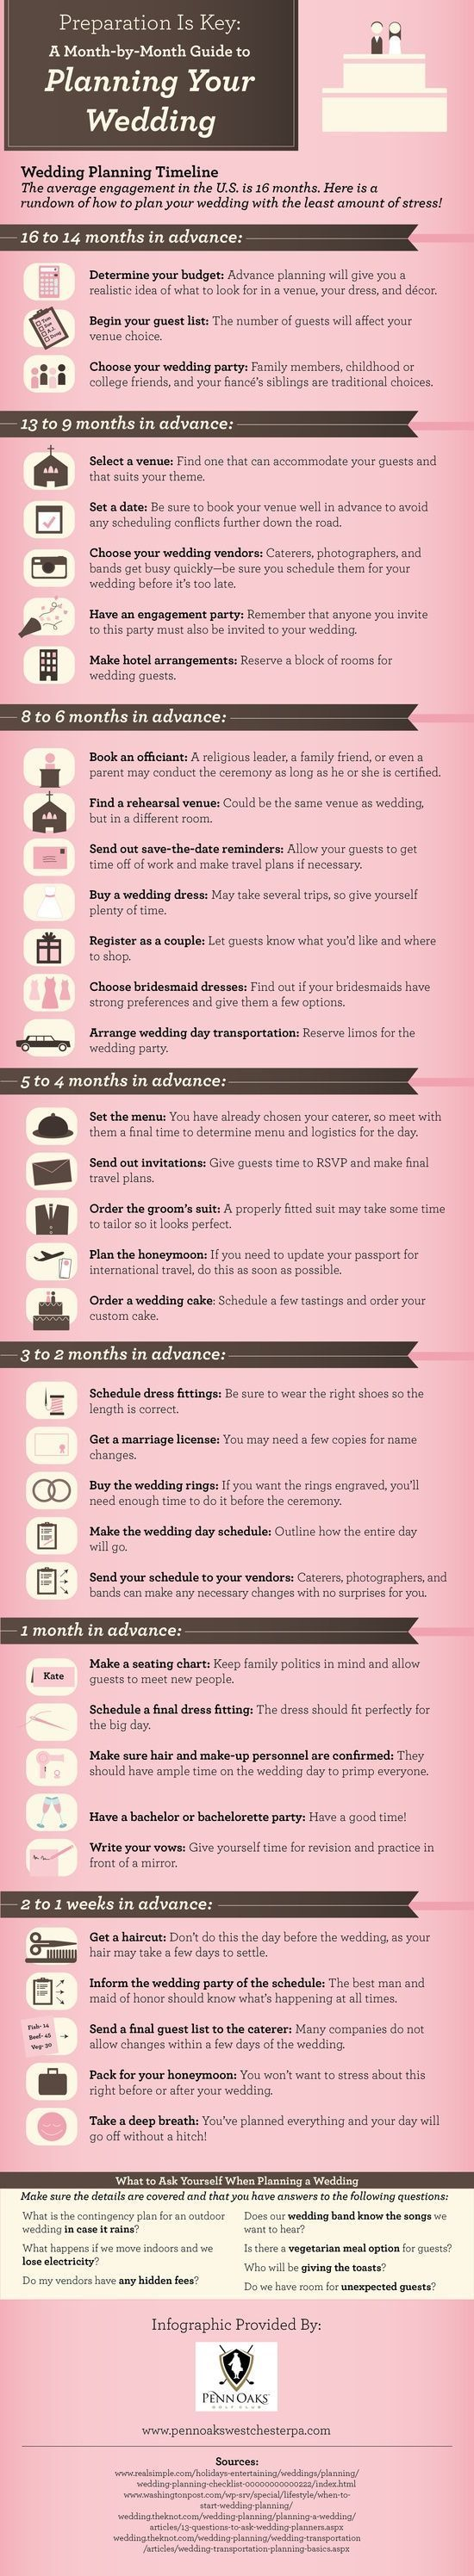 wedding planning checklist spreadsheet free%0A Wedding Planning Timeline   Wedding Planning Checklist    http   www rockmywedding co uk congratulationsonyourengagement    Wedding  Belles   Pinterest